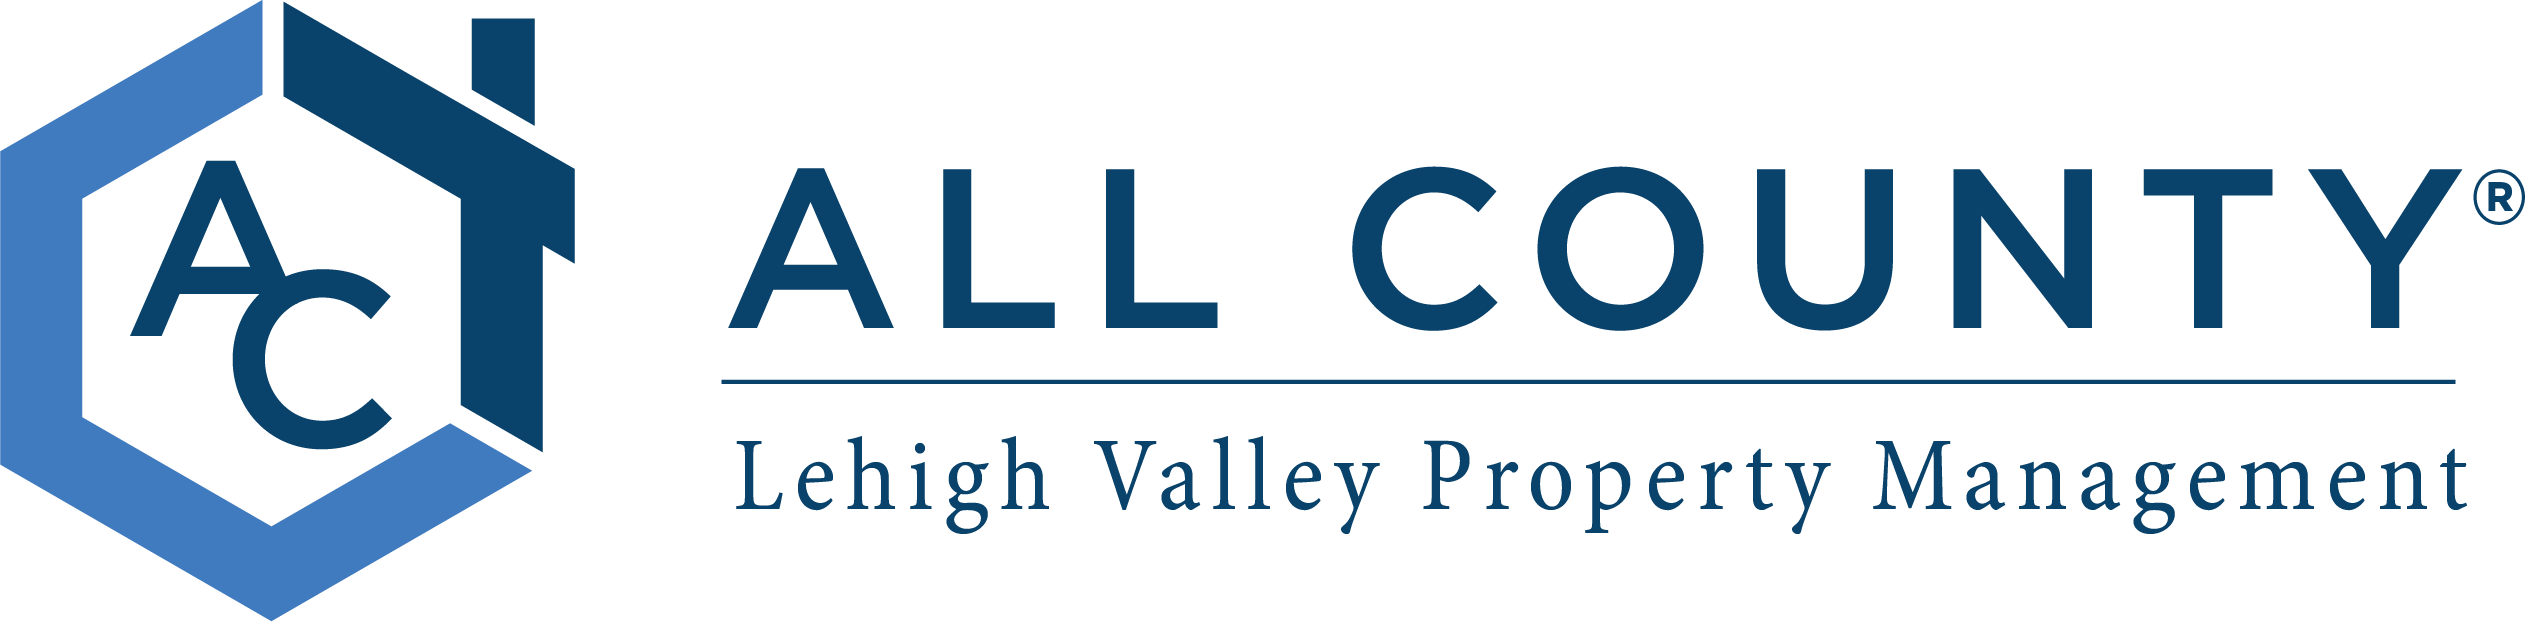 All County Lehigh Valley Property Management